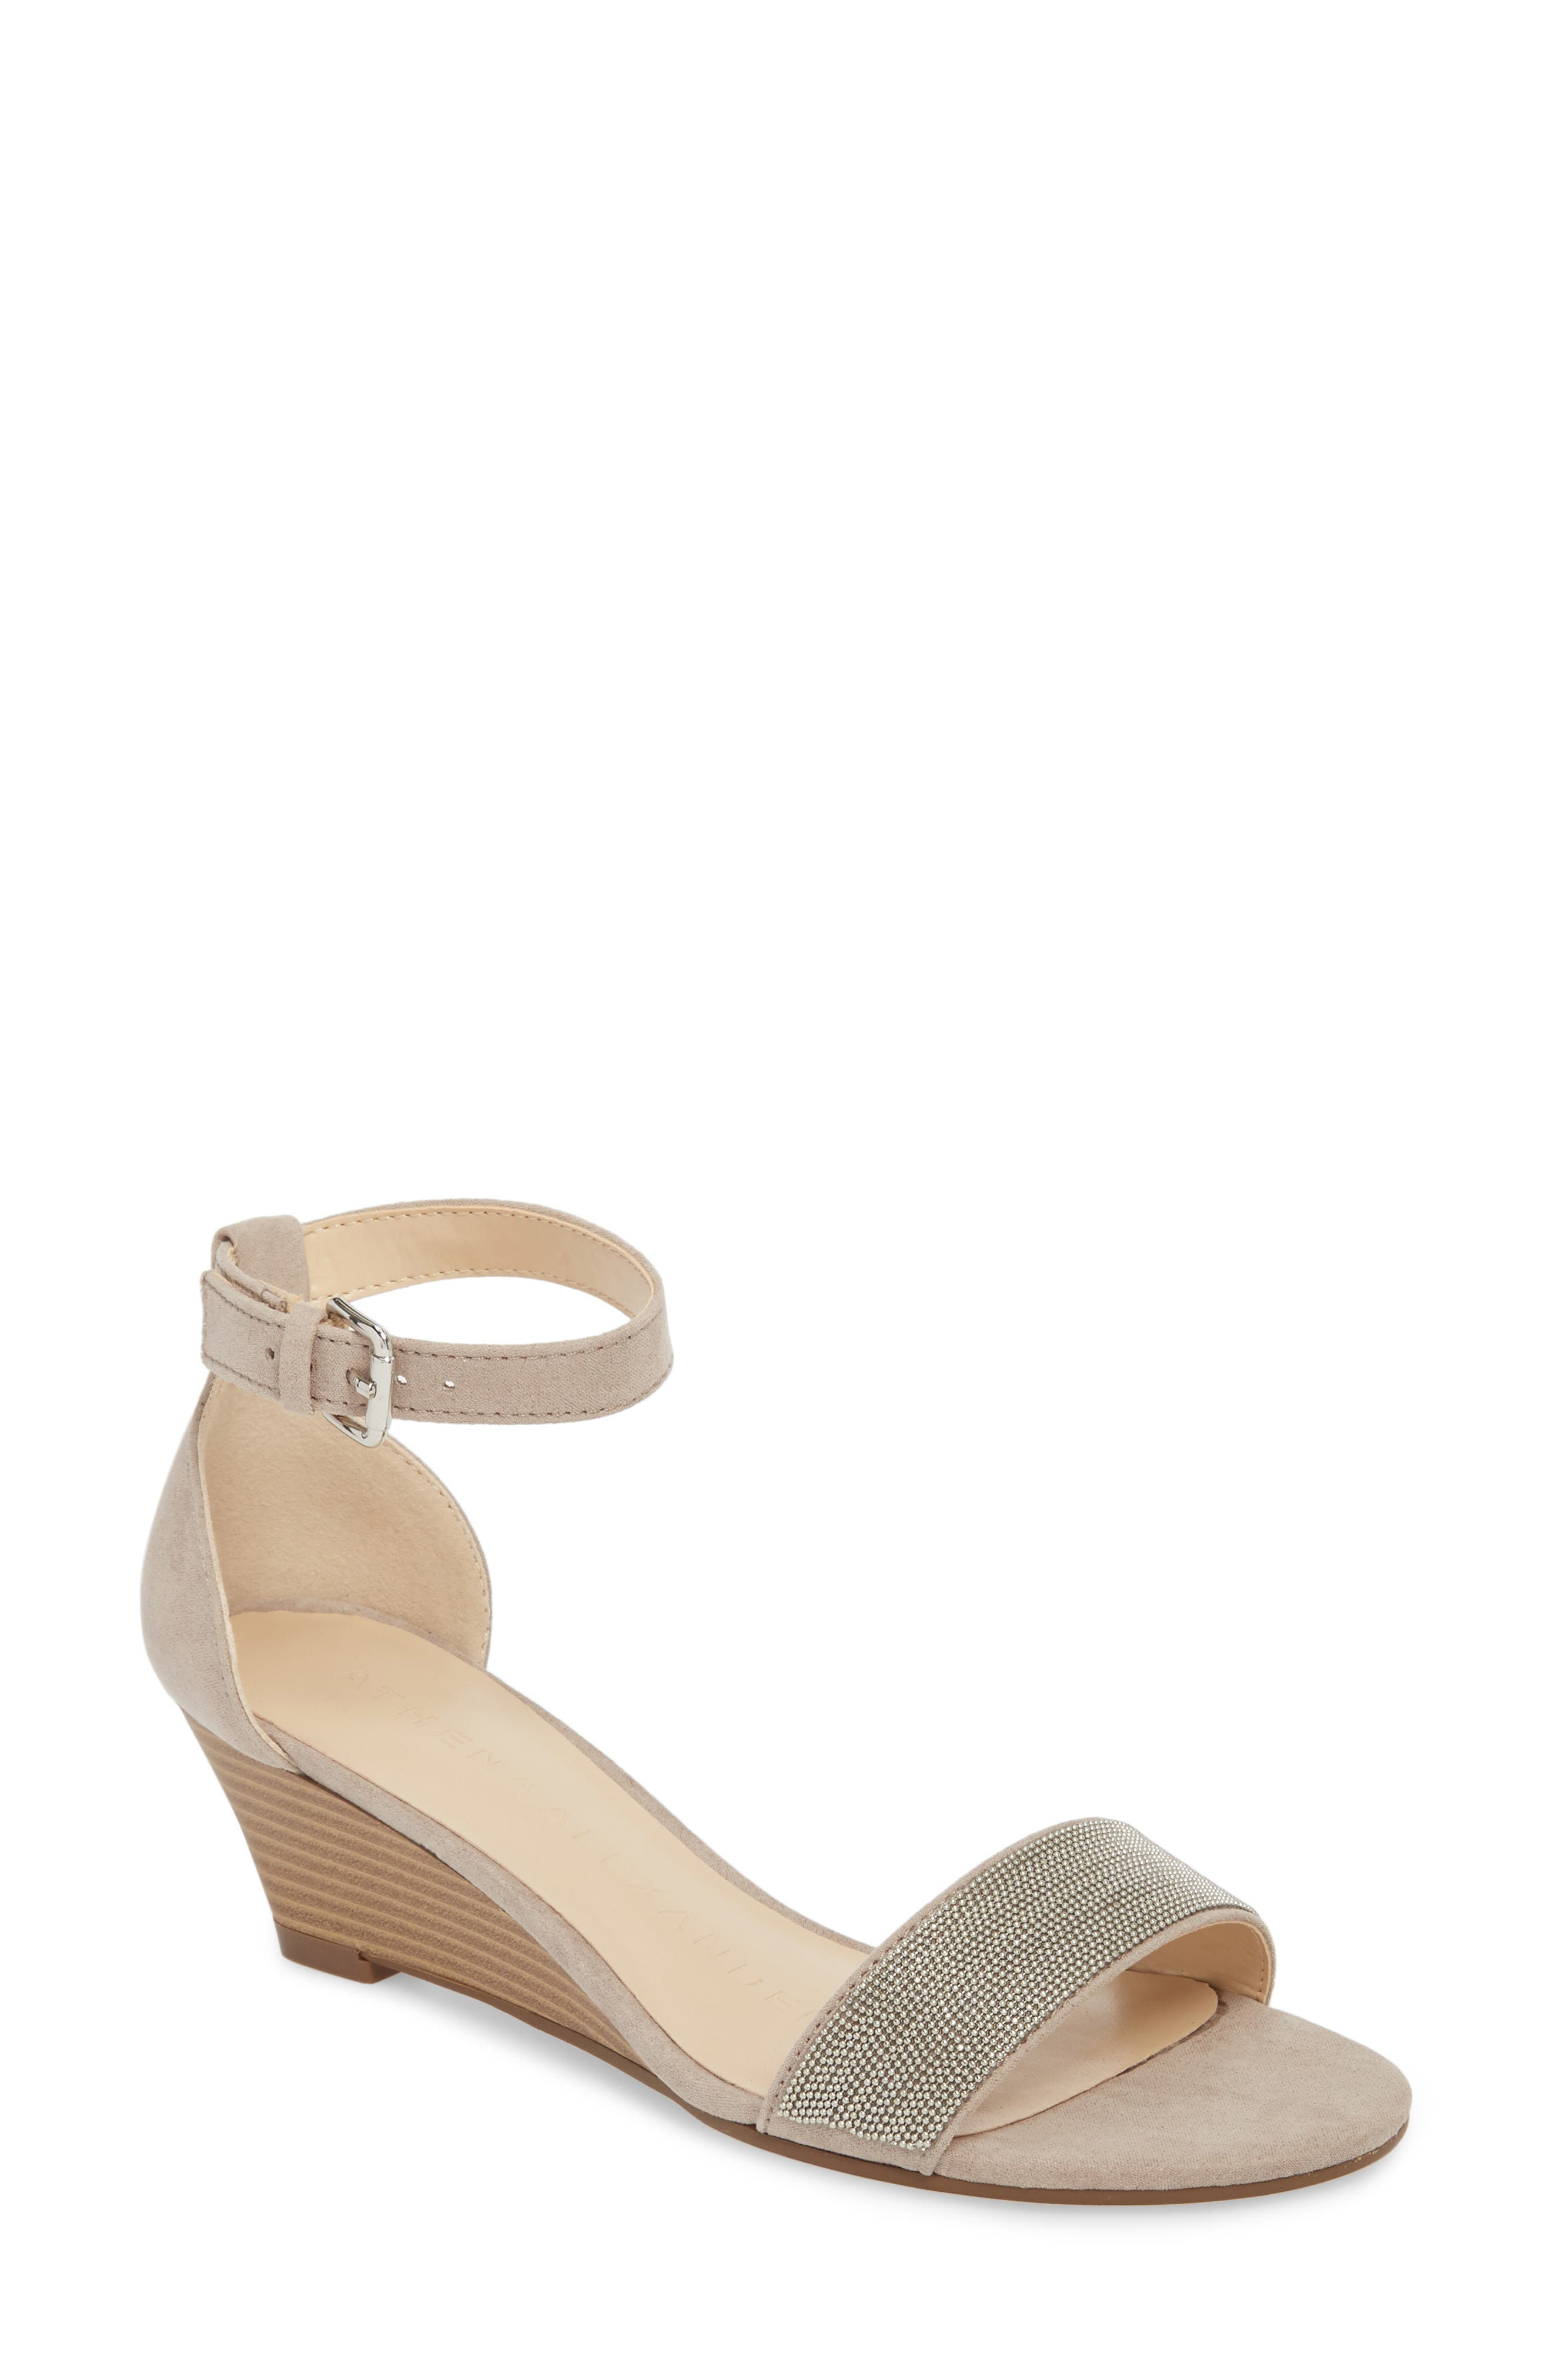 Enfield Ankle Strap Wedge Sandal,                             Main thumbnail 1, color,                             TAUPE SUEDE